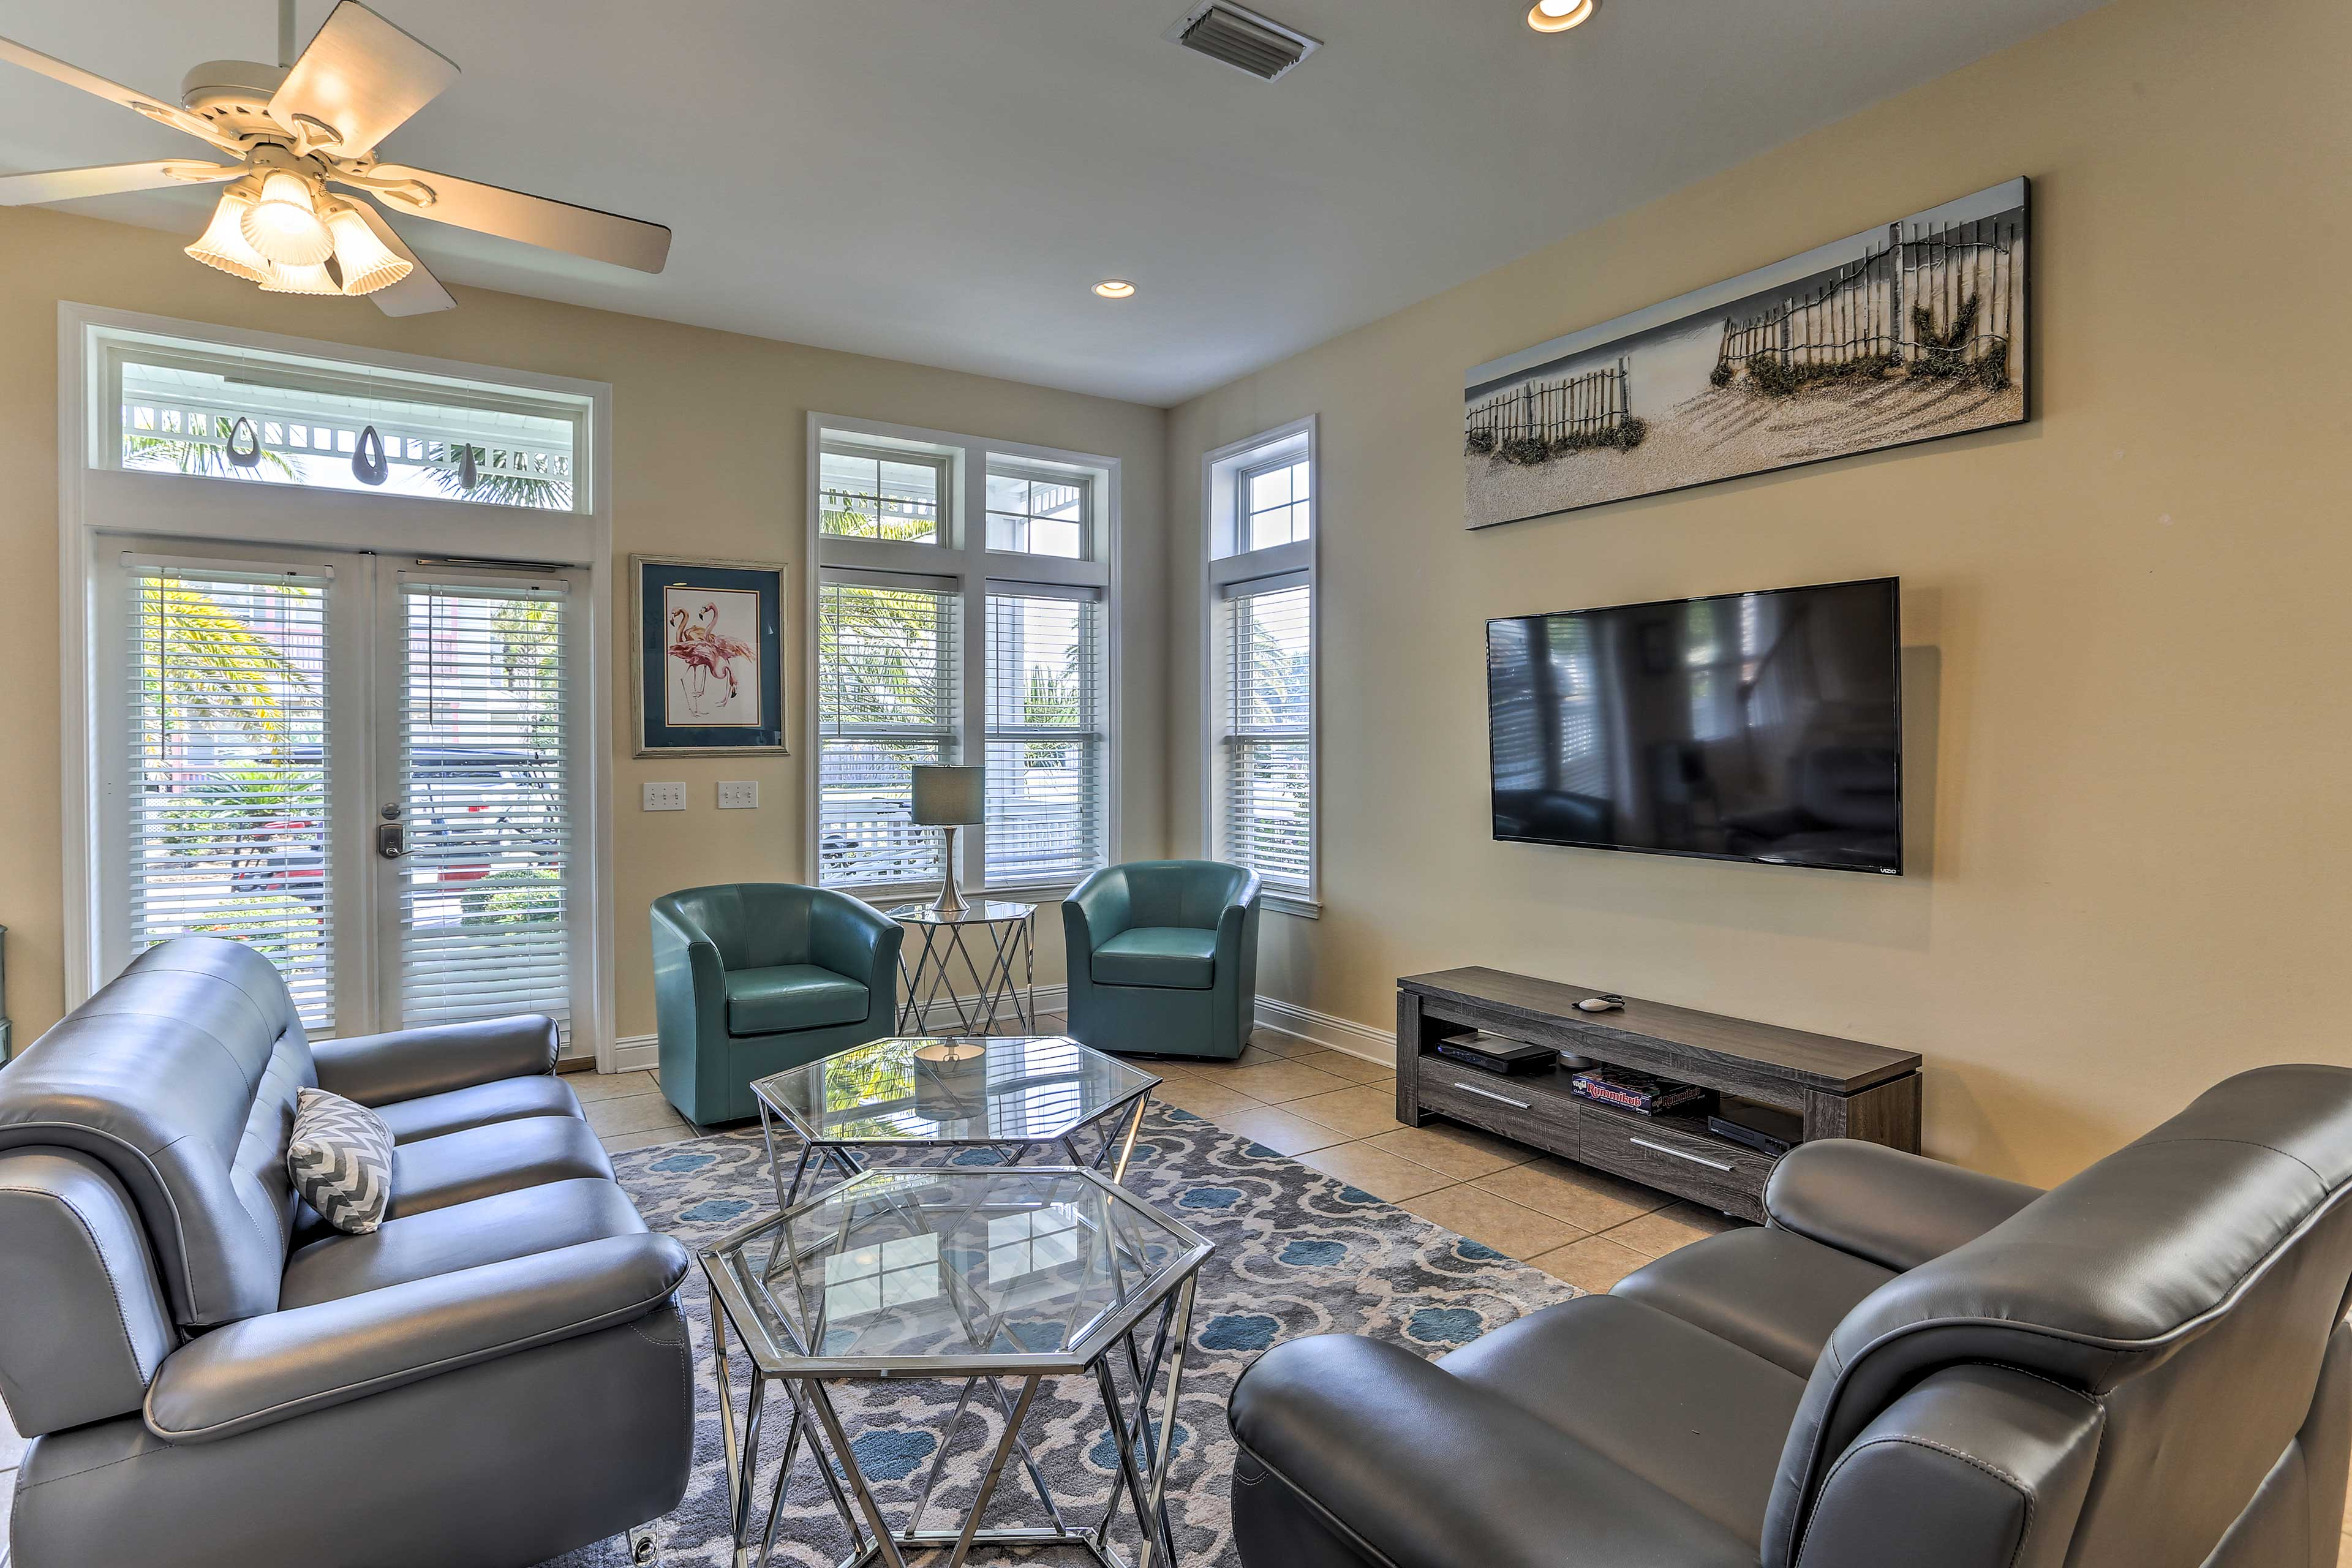 Unwind in the living room and watch shows on the 70-inch flat-screen cable TV.